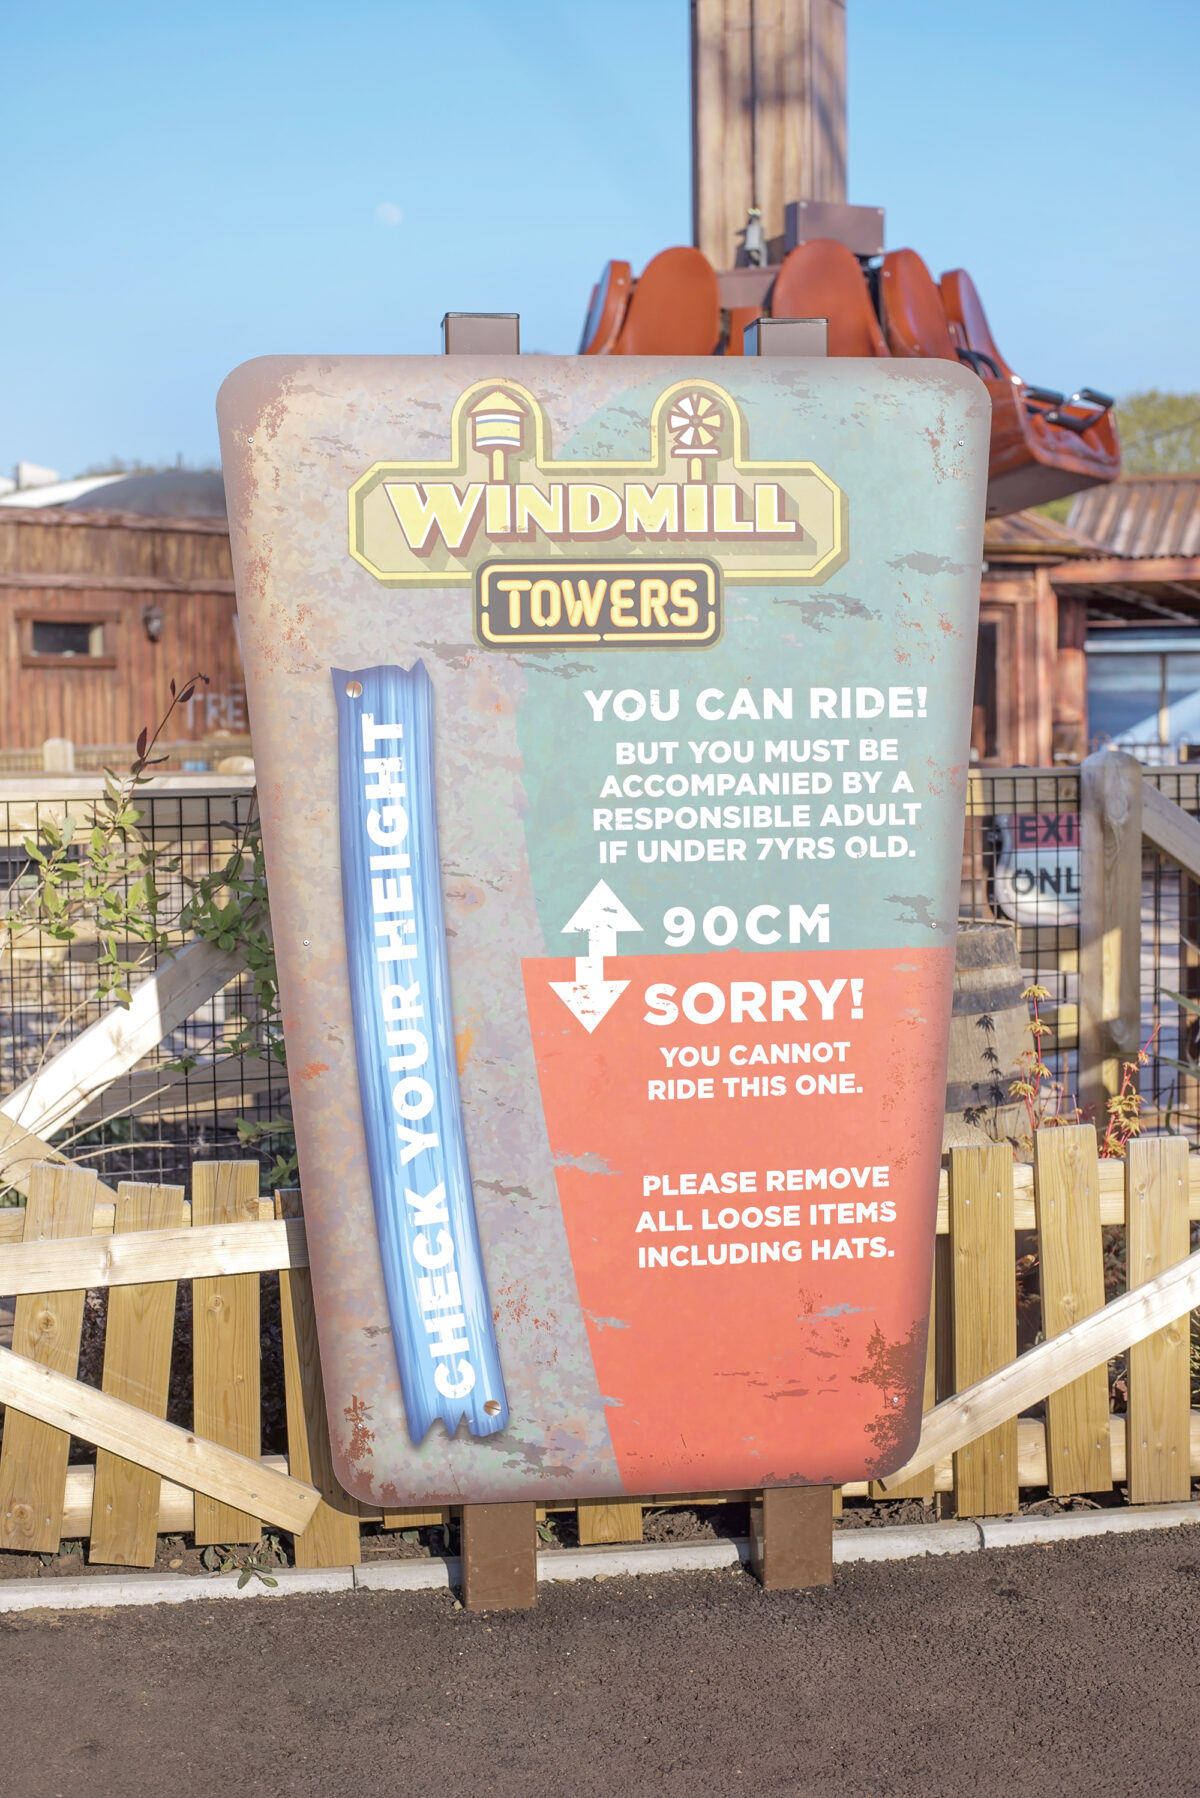 Image shows the ride restrictions for Windmill Falls at Tornado Springs in Paultons Park.